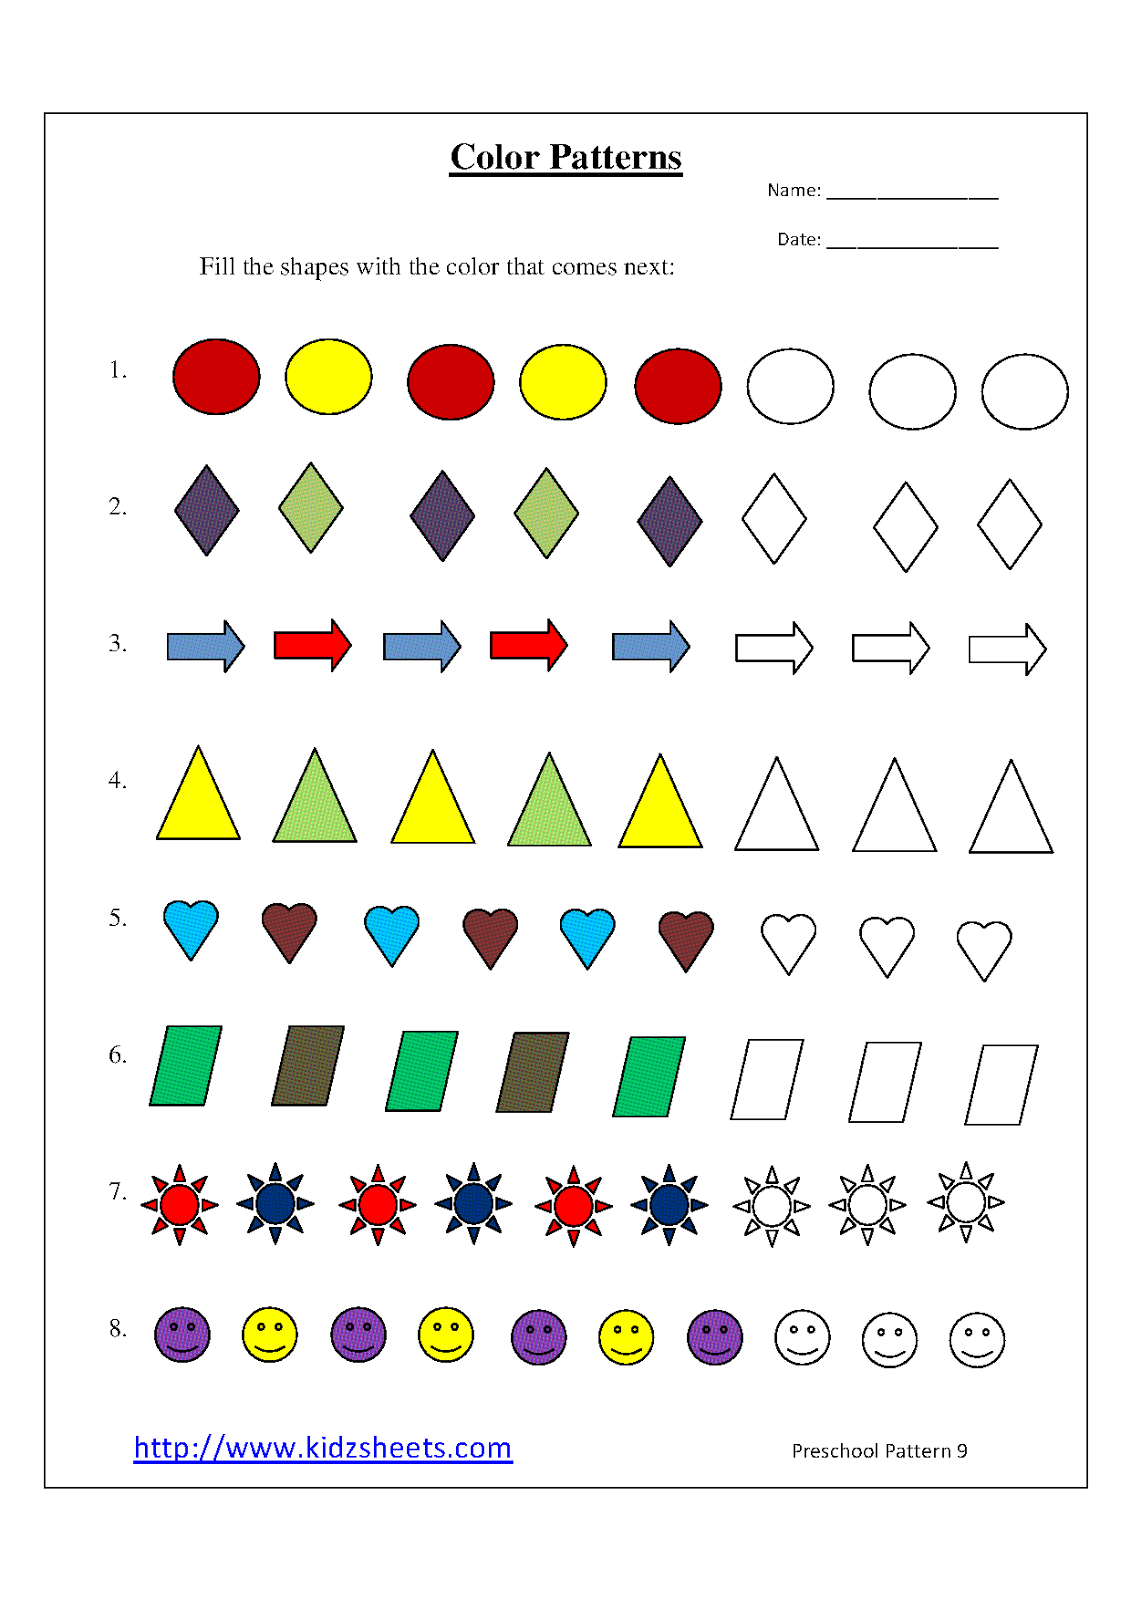 Kidz Worksheets Preschool Color Patterns Worksheet9